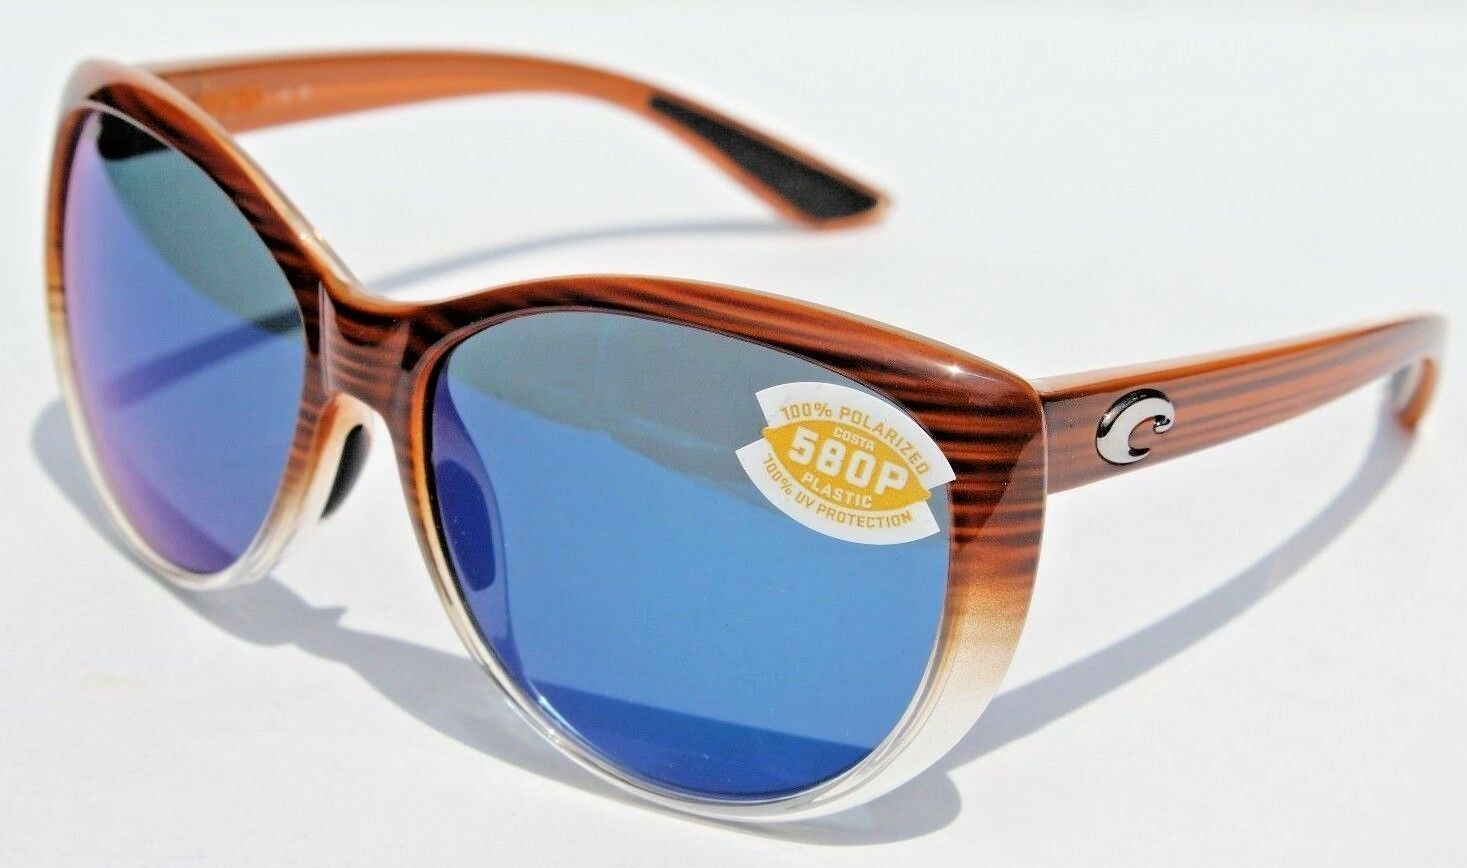 bd4d0f78a9c44 Costa Polarized La Mar Wood Fade Frame Blue Mirror 580p Plastic LM ...